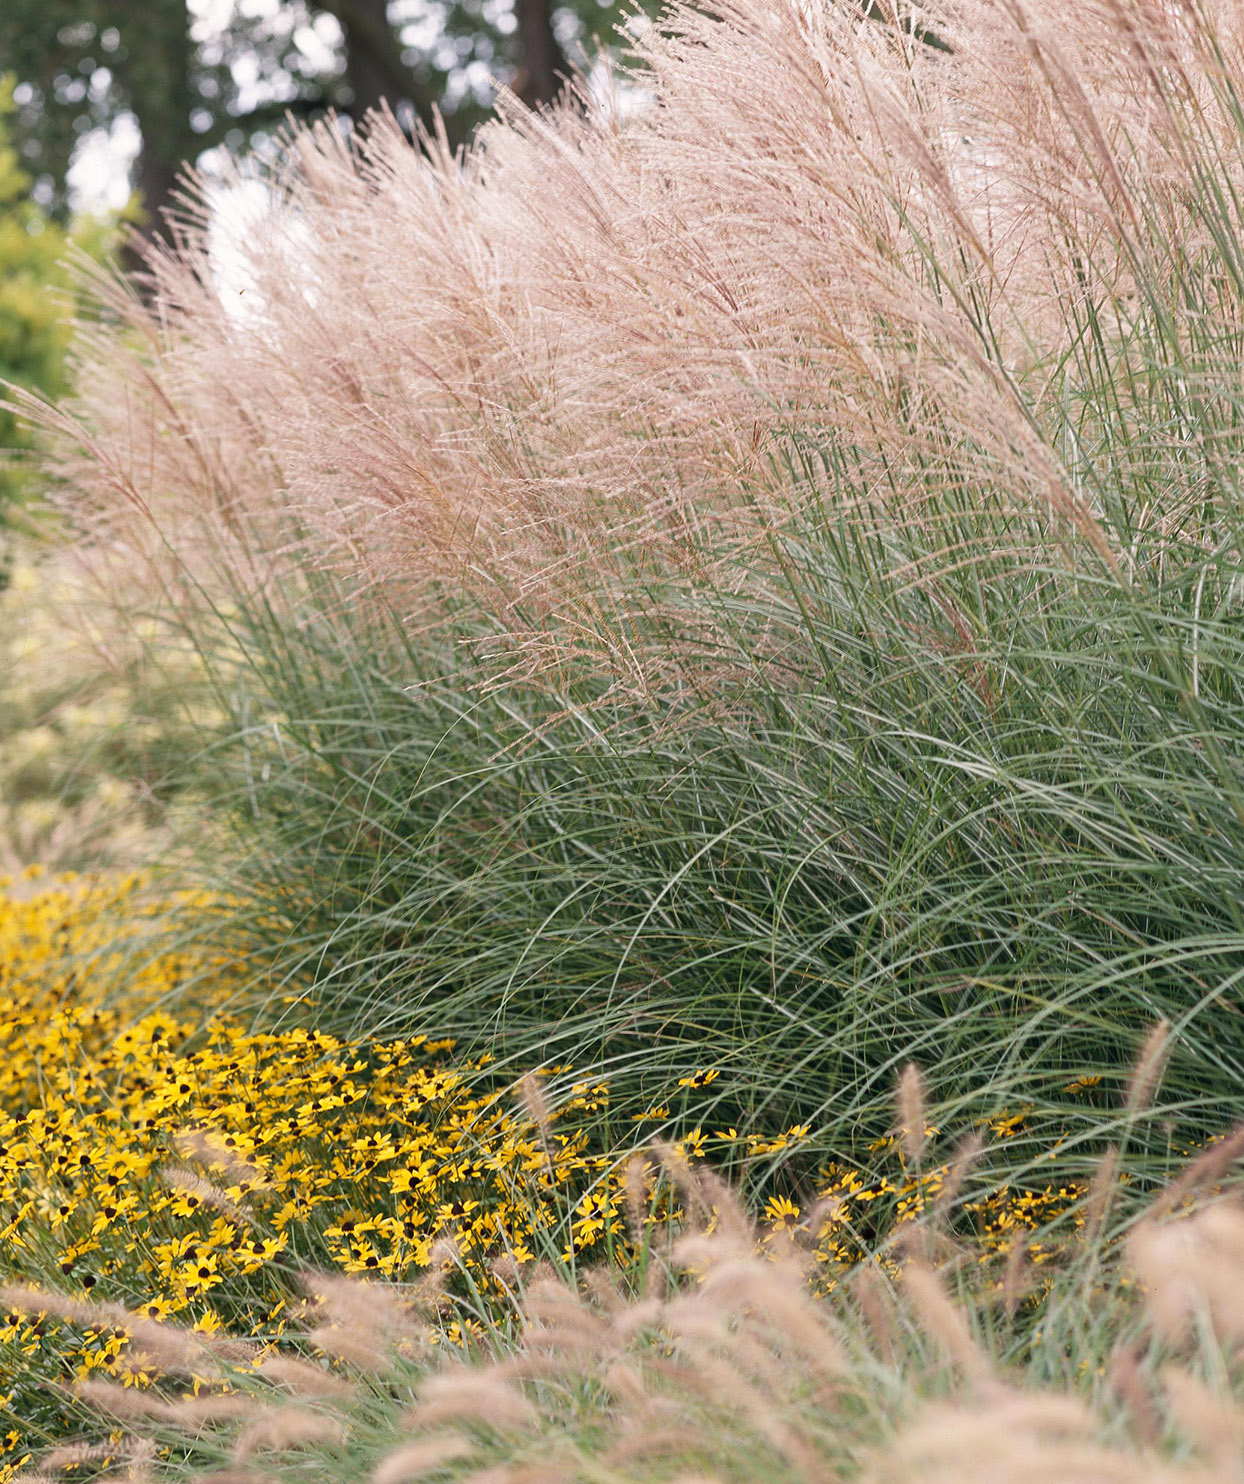 Miscanthus ornamental grass